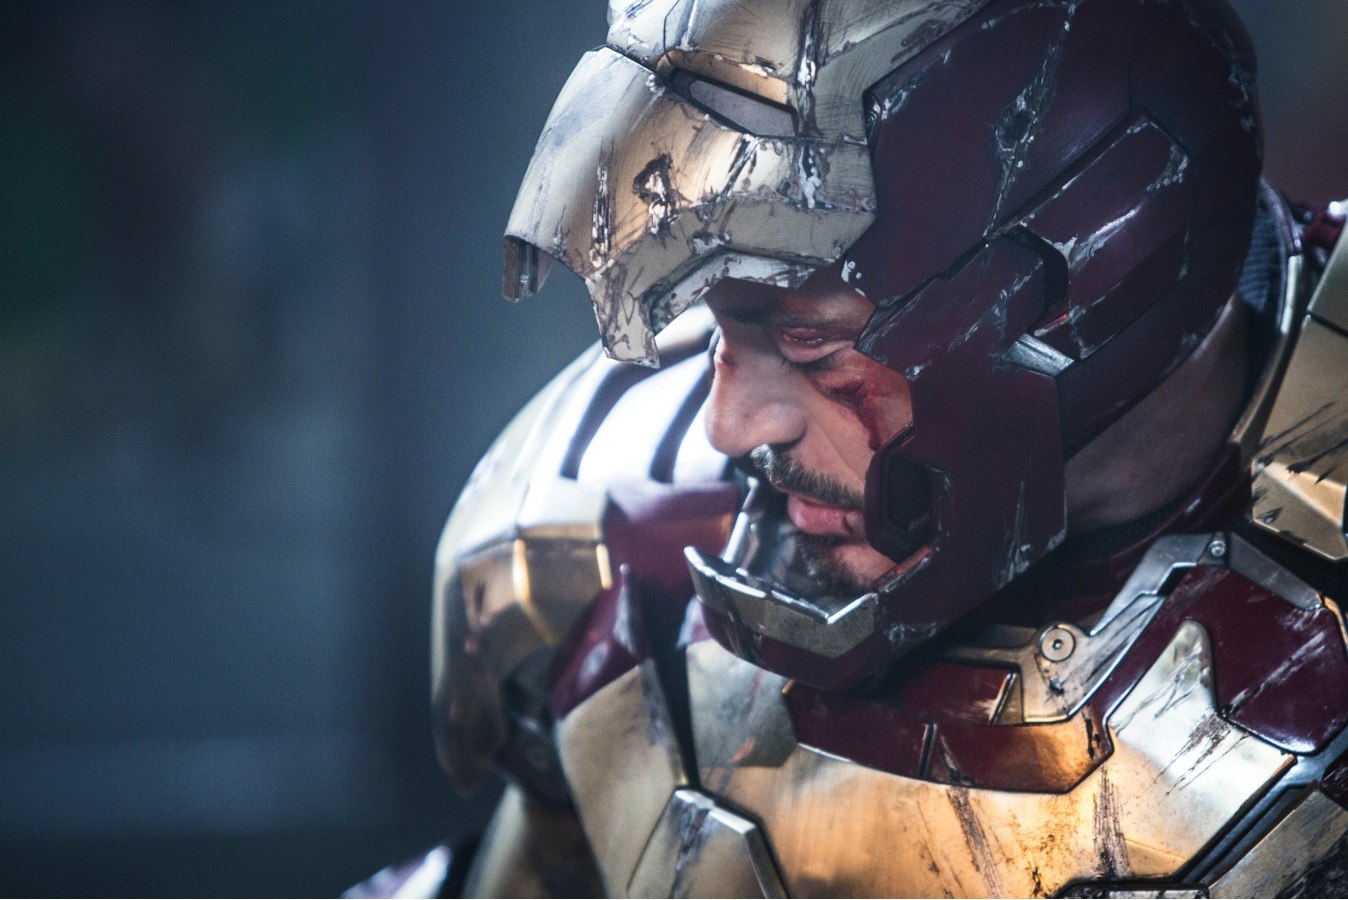 New Iron Man 3 image shows a bloodied Robert Downey Jr